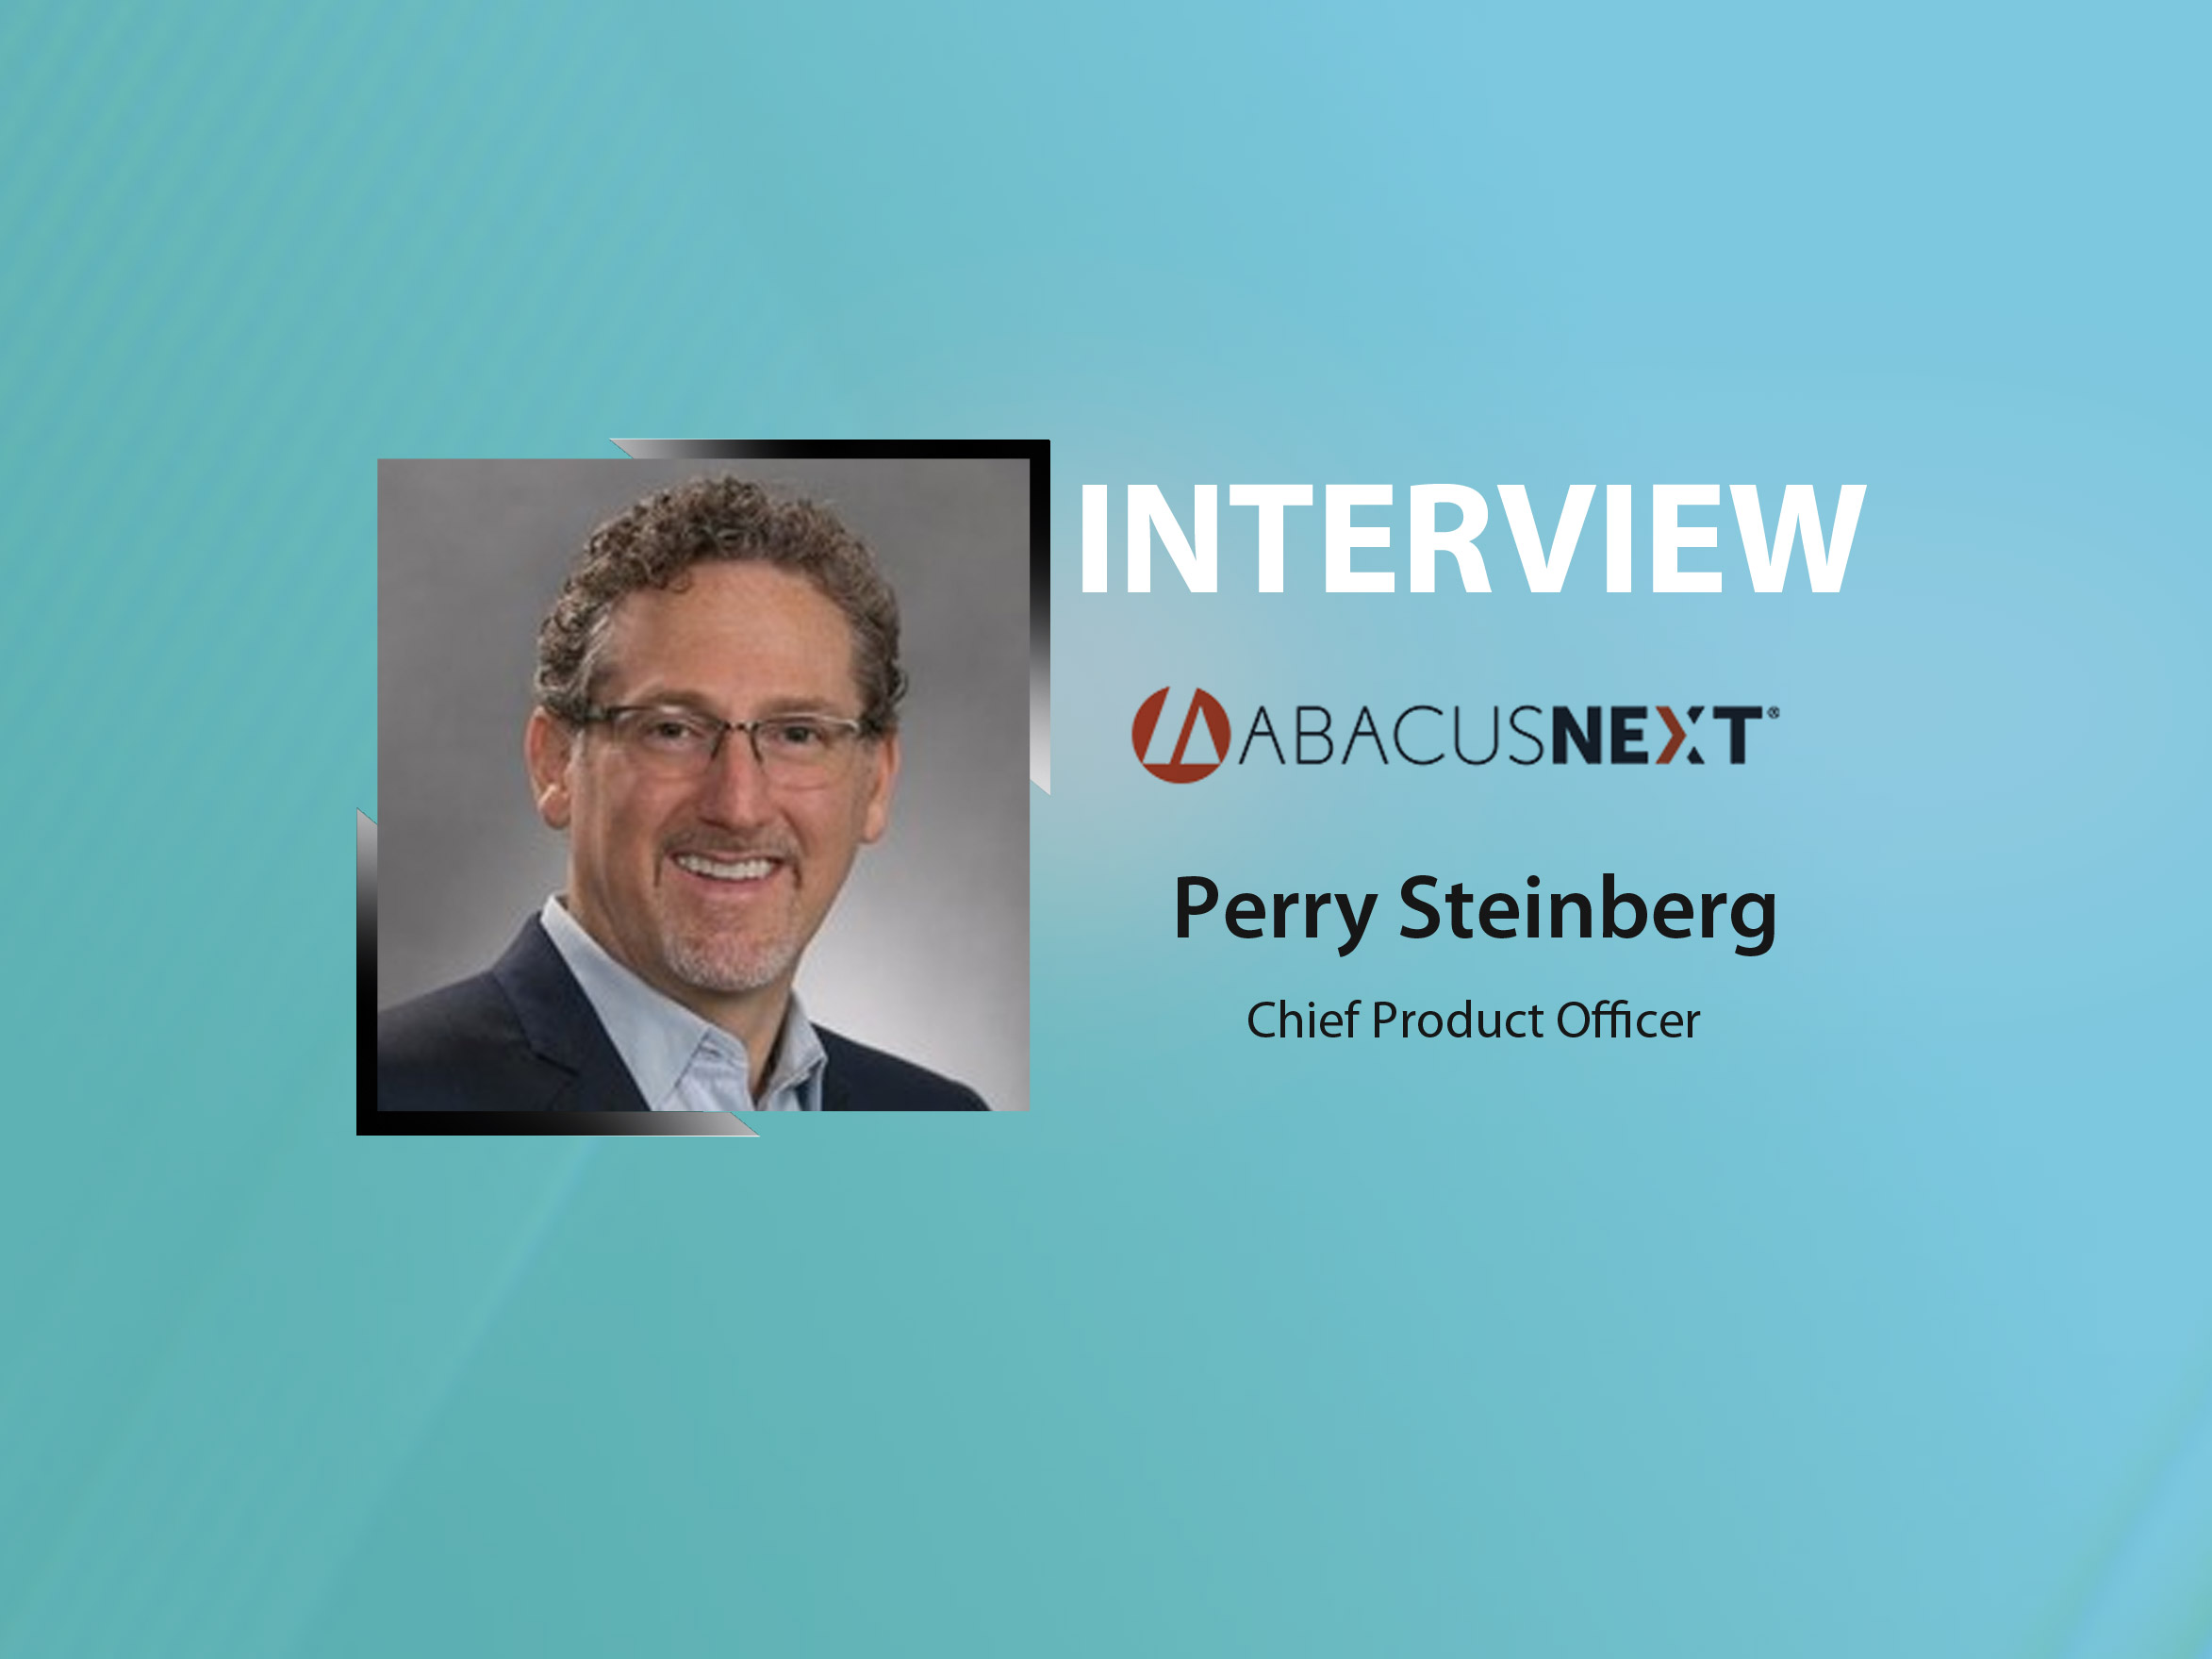 GlobalFintechSeries Interview with Perry Steinberg, Chief Product Officer at AbacusNext